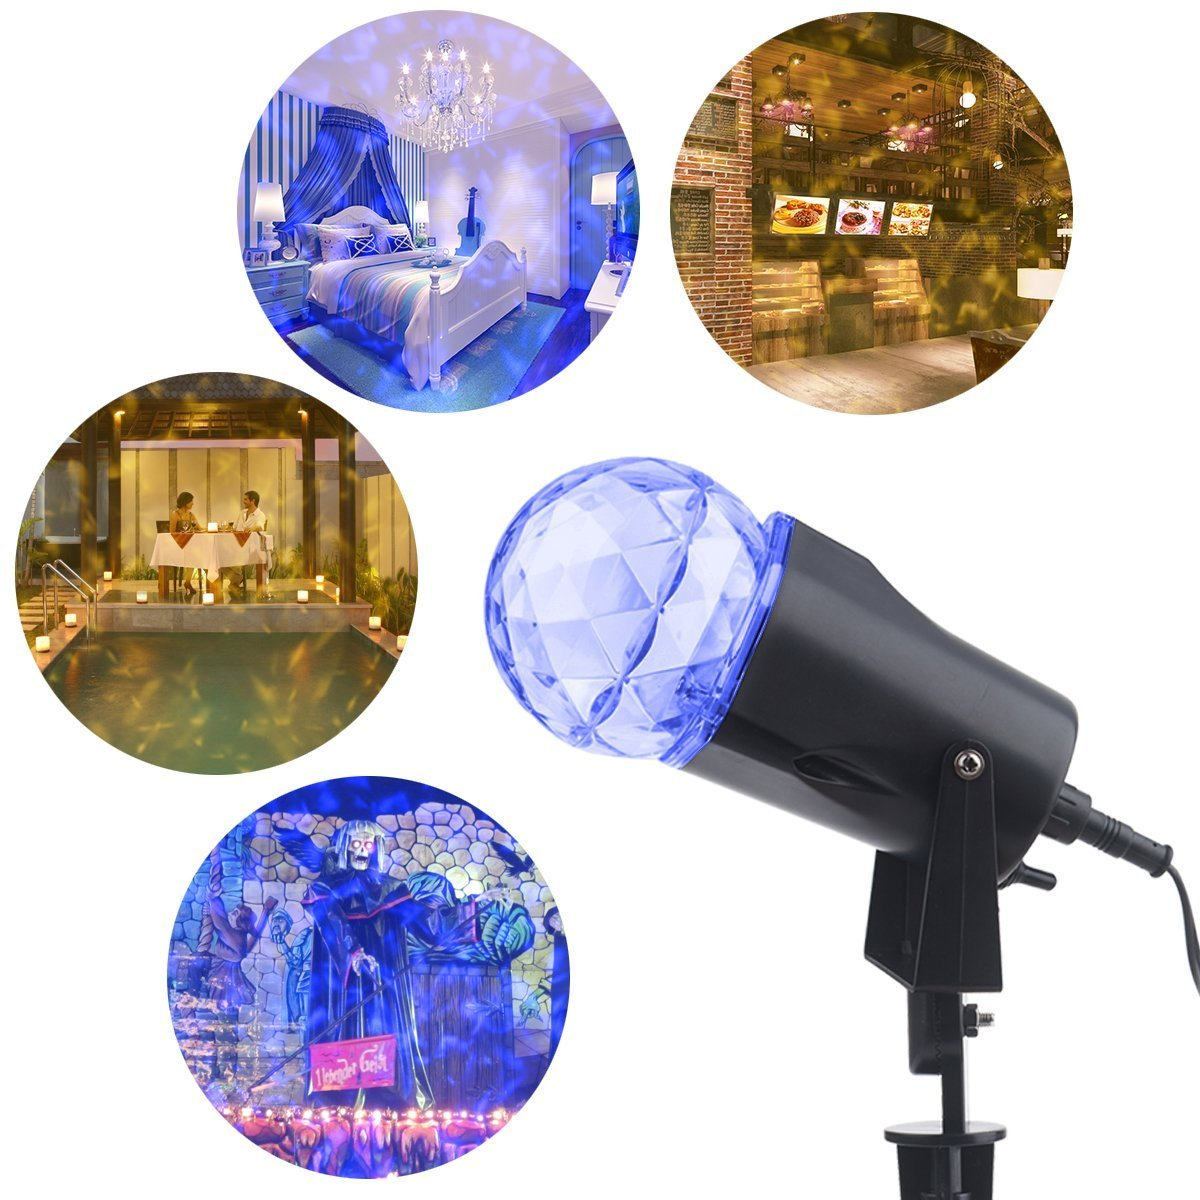 YMING Kaleidoscope Projection Spotlight, Outdoor LED Rotating Light Show Crystal Ball Flame Light Waterproof Garden Party Landscape Light, Blue White